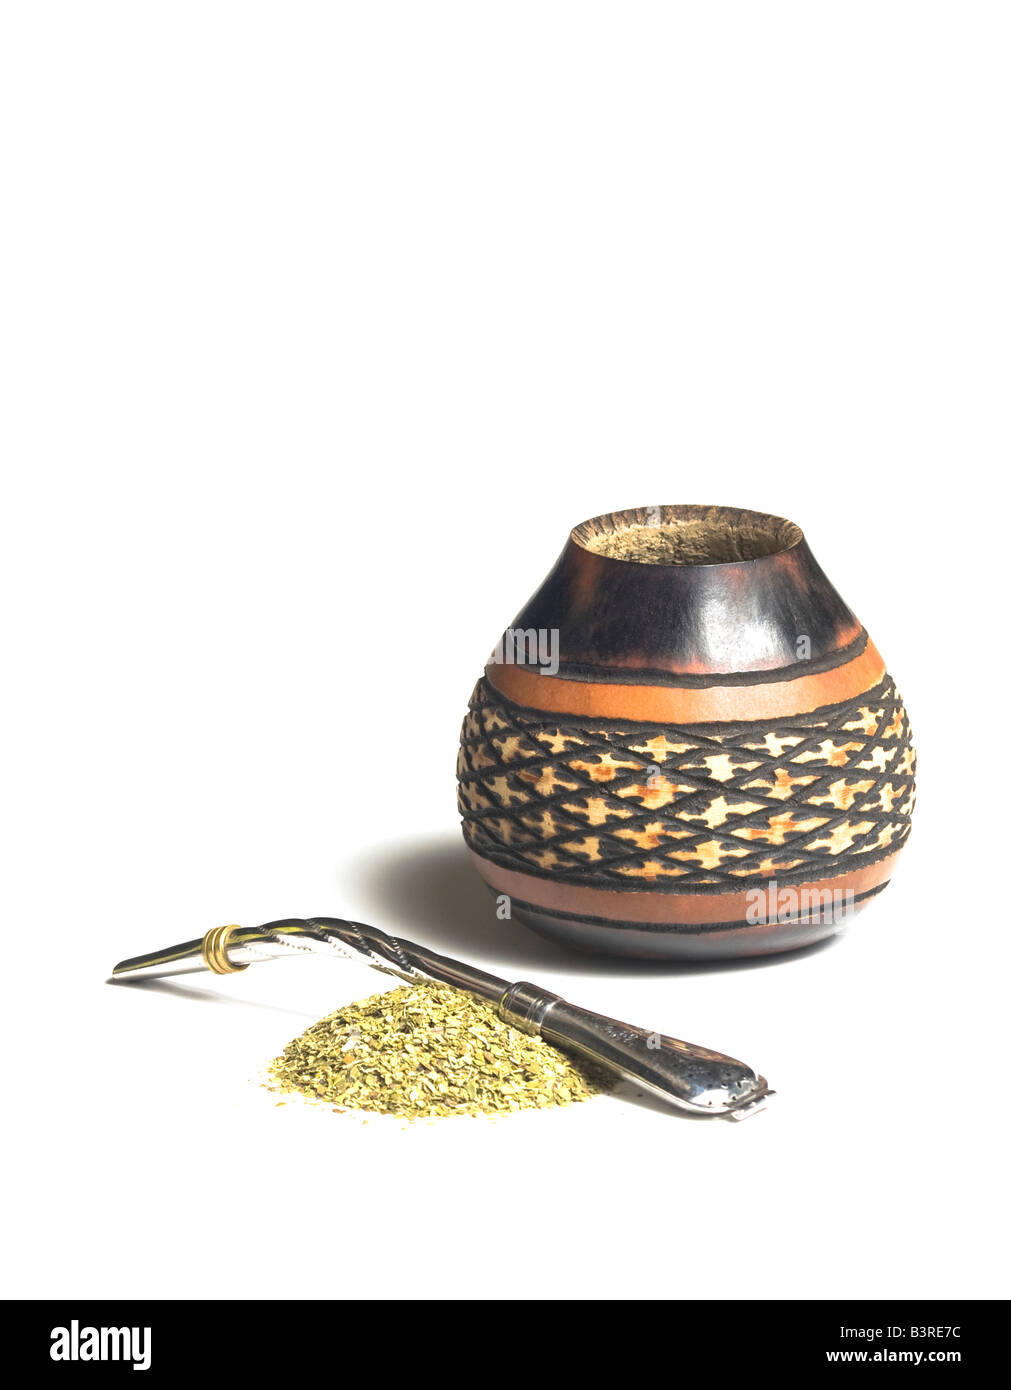 Gourd with bombilla and yerba mate - Stock Image